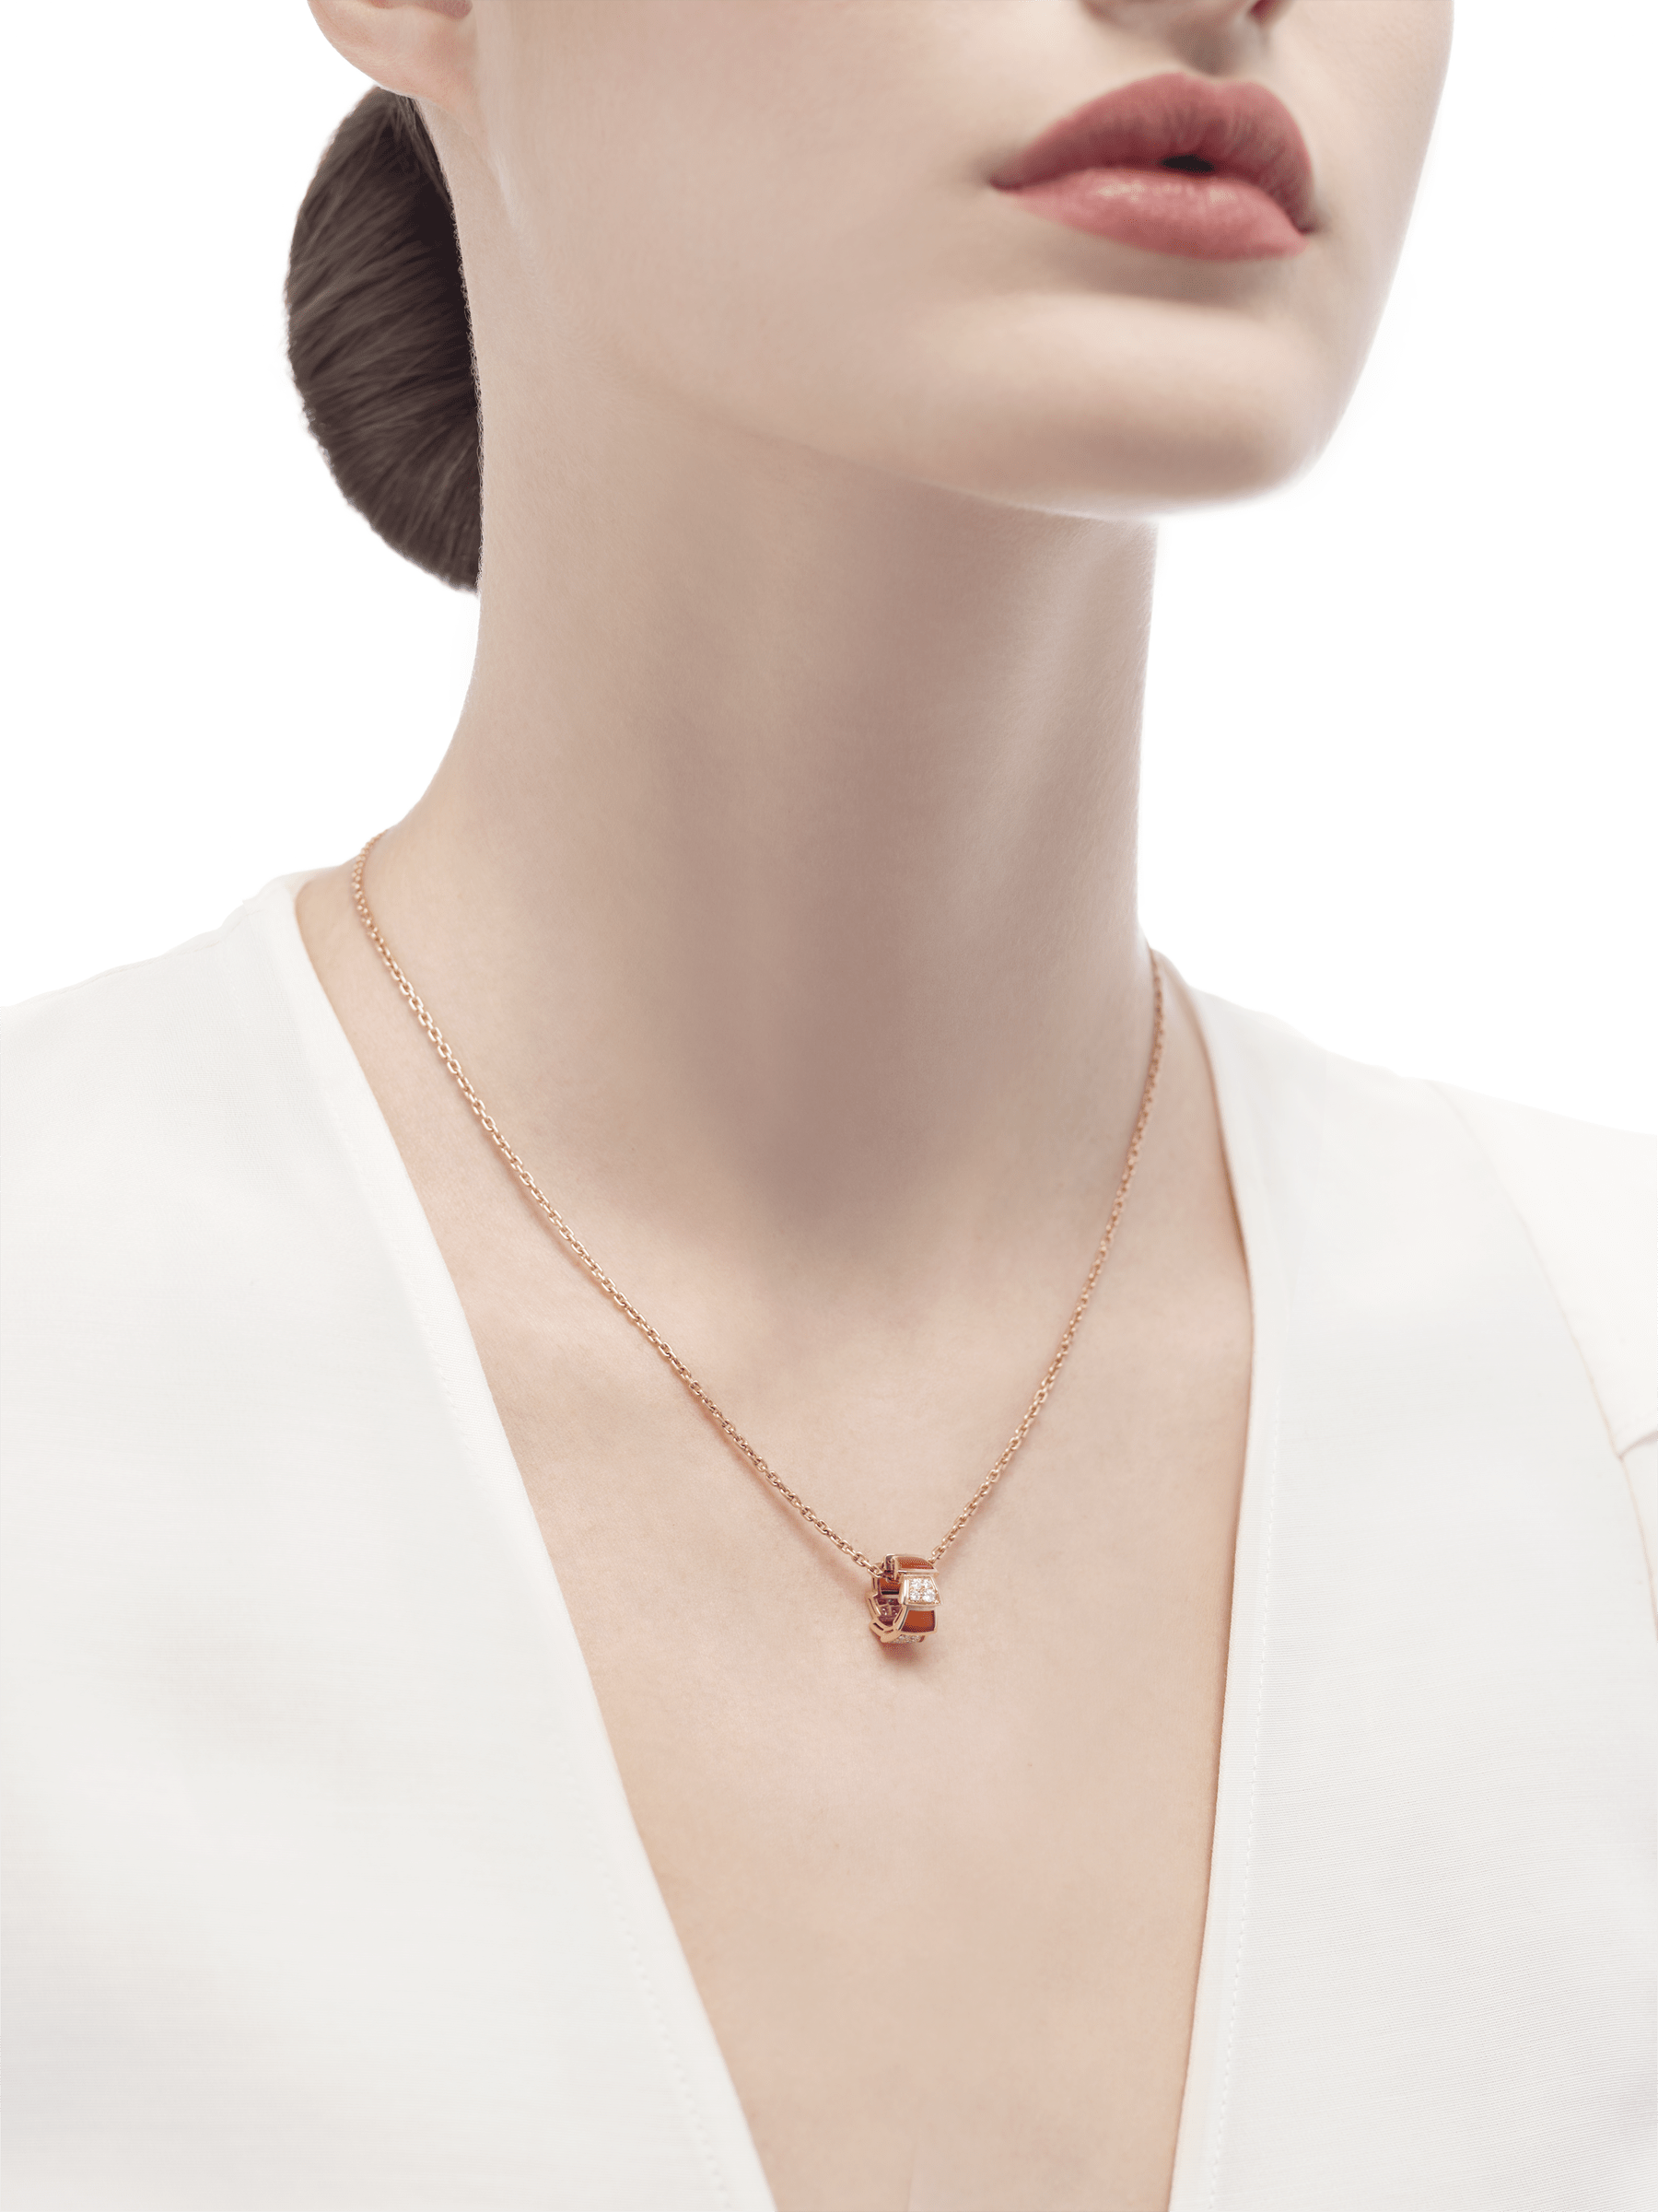 Serpenti Viper necklace with 18 kt rose gold chain and 18 kt rose gold pendant set with carnelian elements and demi pavé diamonds. (0.21 ct) 355088 image 4